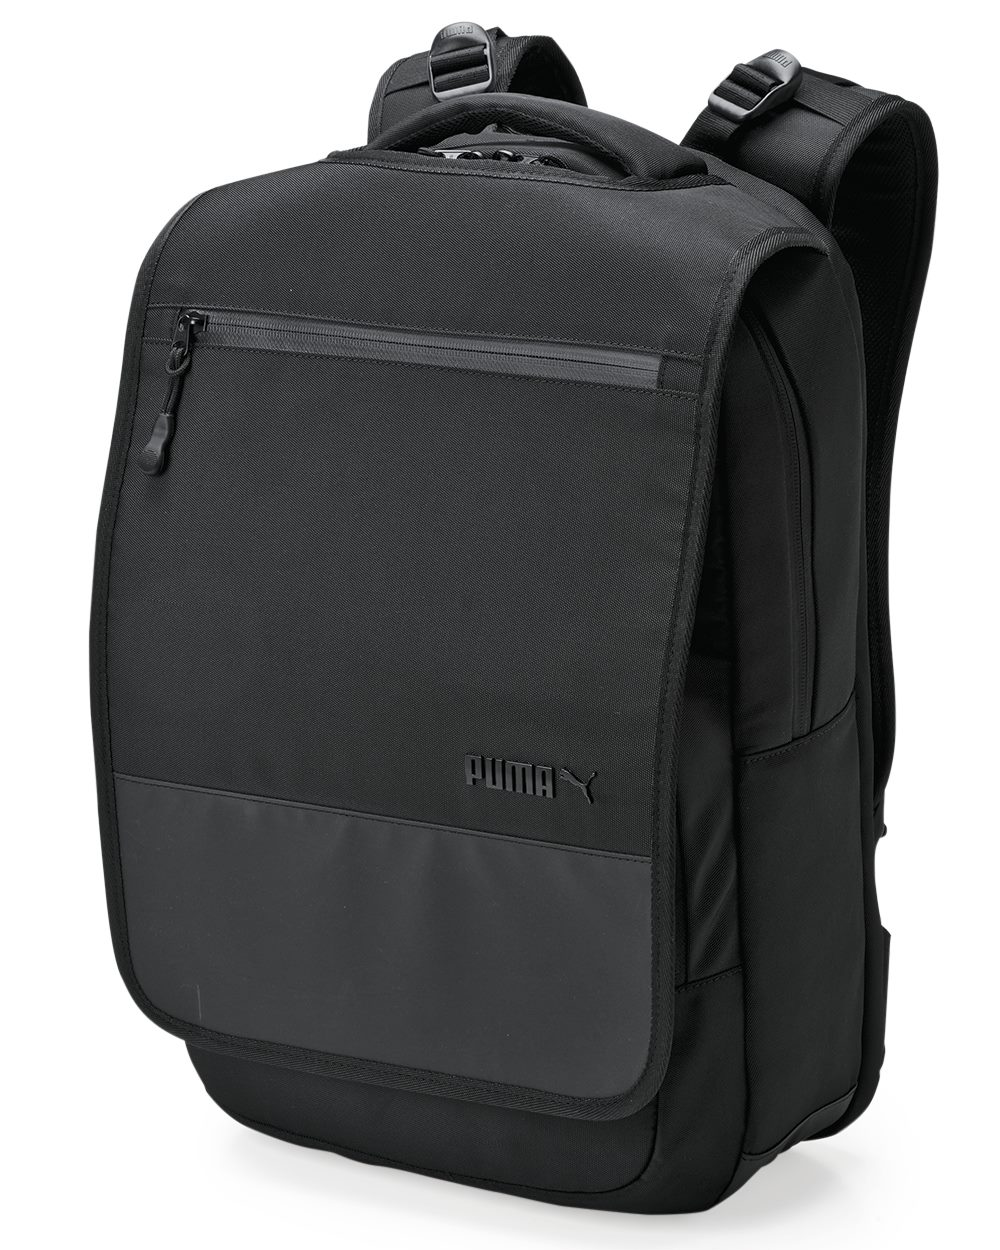 6baee8407b PUMA PSC1009 - Droptop Messenger Bag  45.00 - Bags